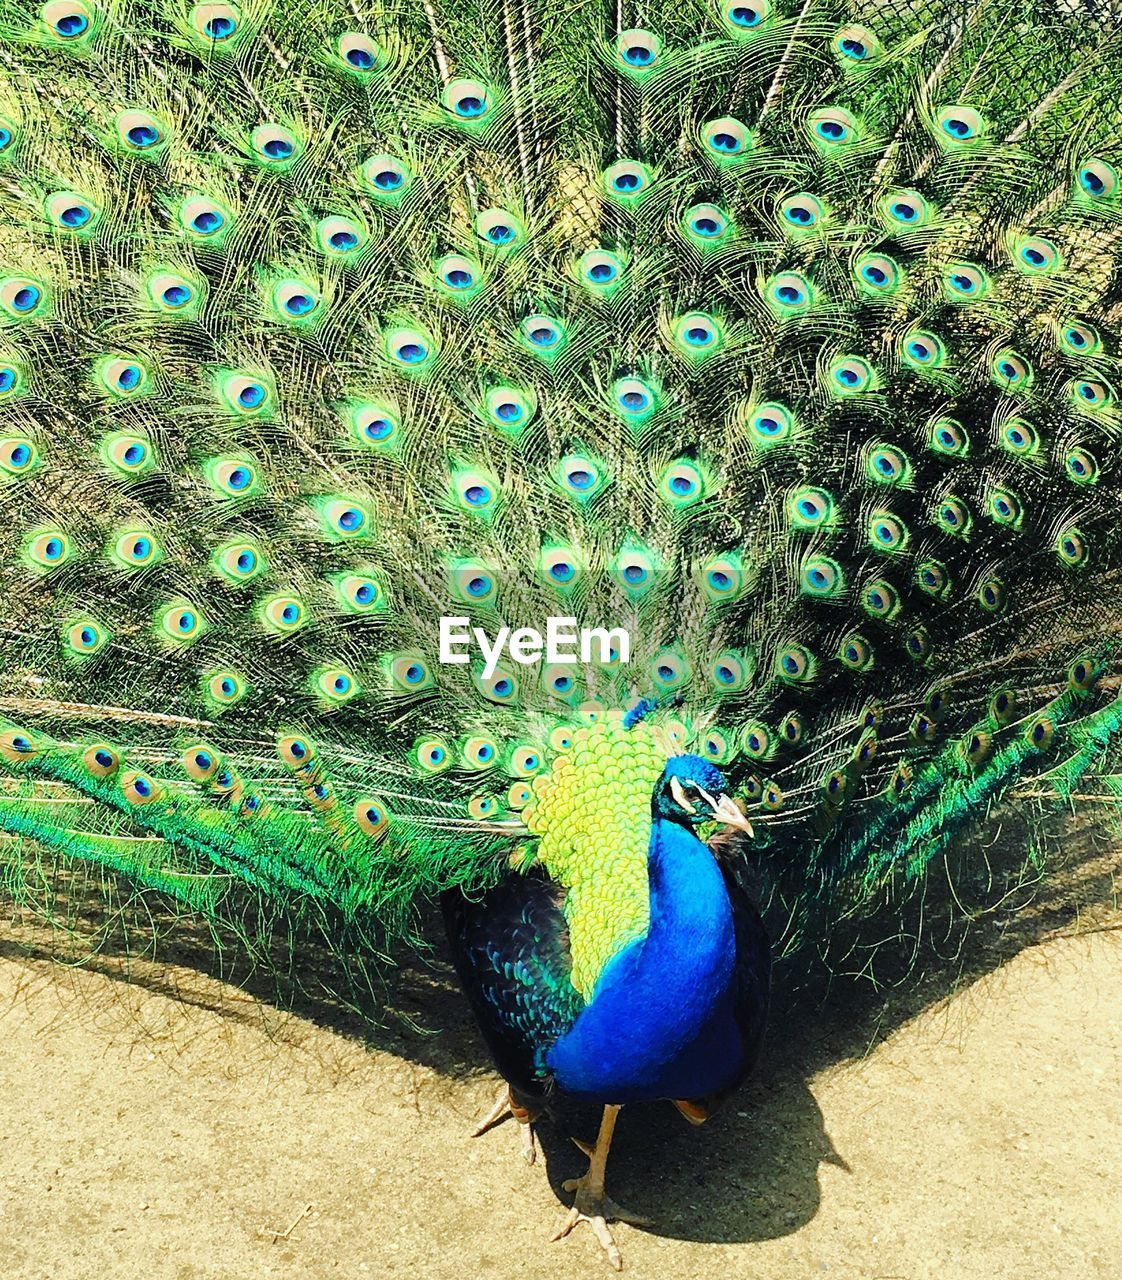 peacock, peacock feather, bird, animal themes, animals in the wild, fanned out, animal wildlife, one animal, feather, blue, beauty in nature, green color, nature, day, outdoors, field, no people, animal crest, close-up